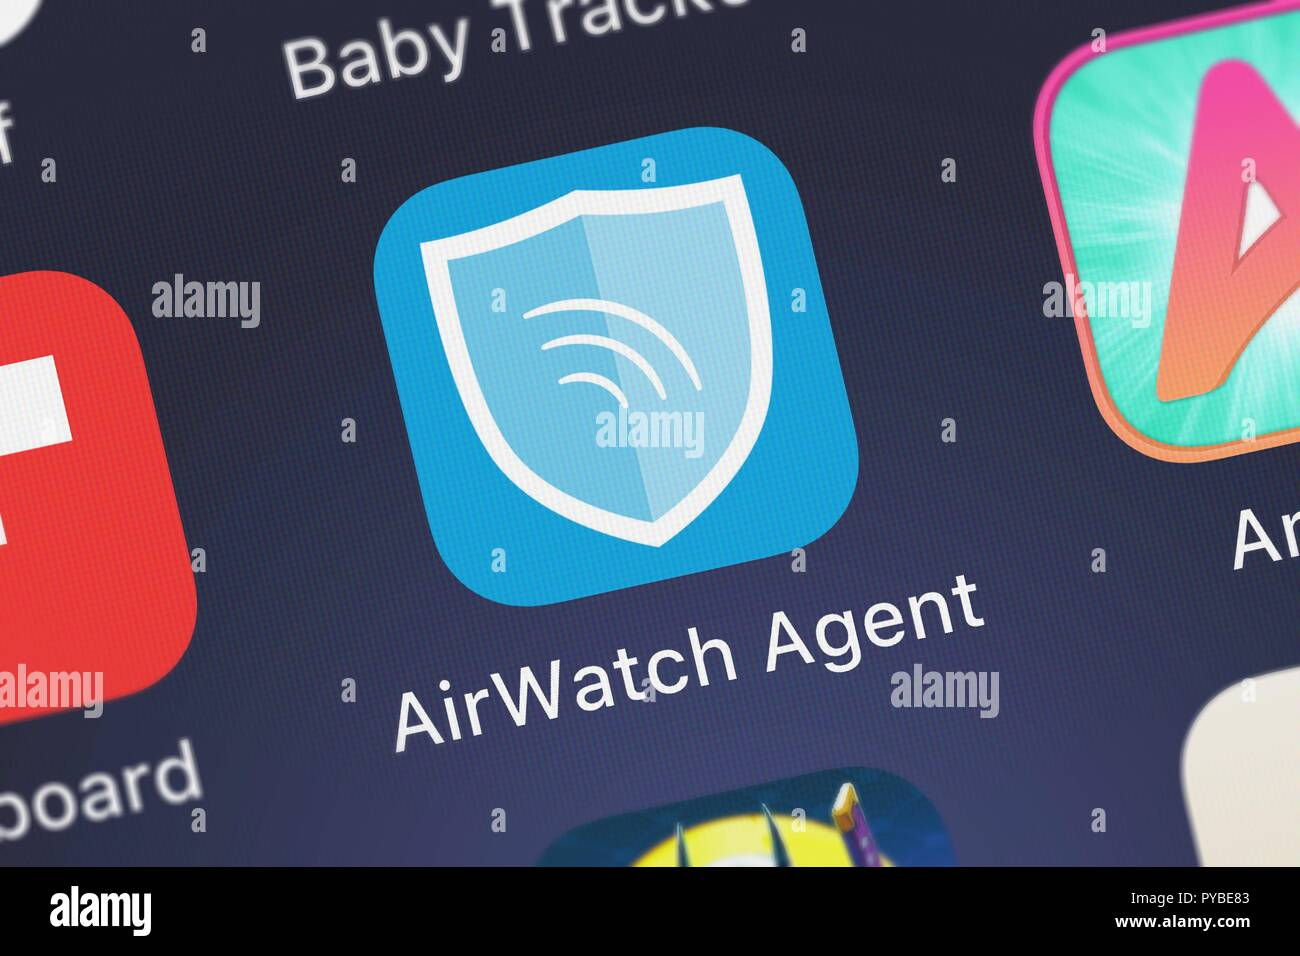 Airwatch Stock Photos & Airwatch Stock Images - Alamy